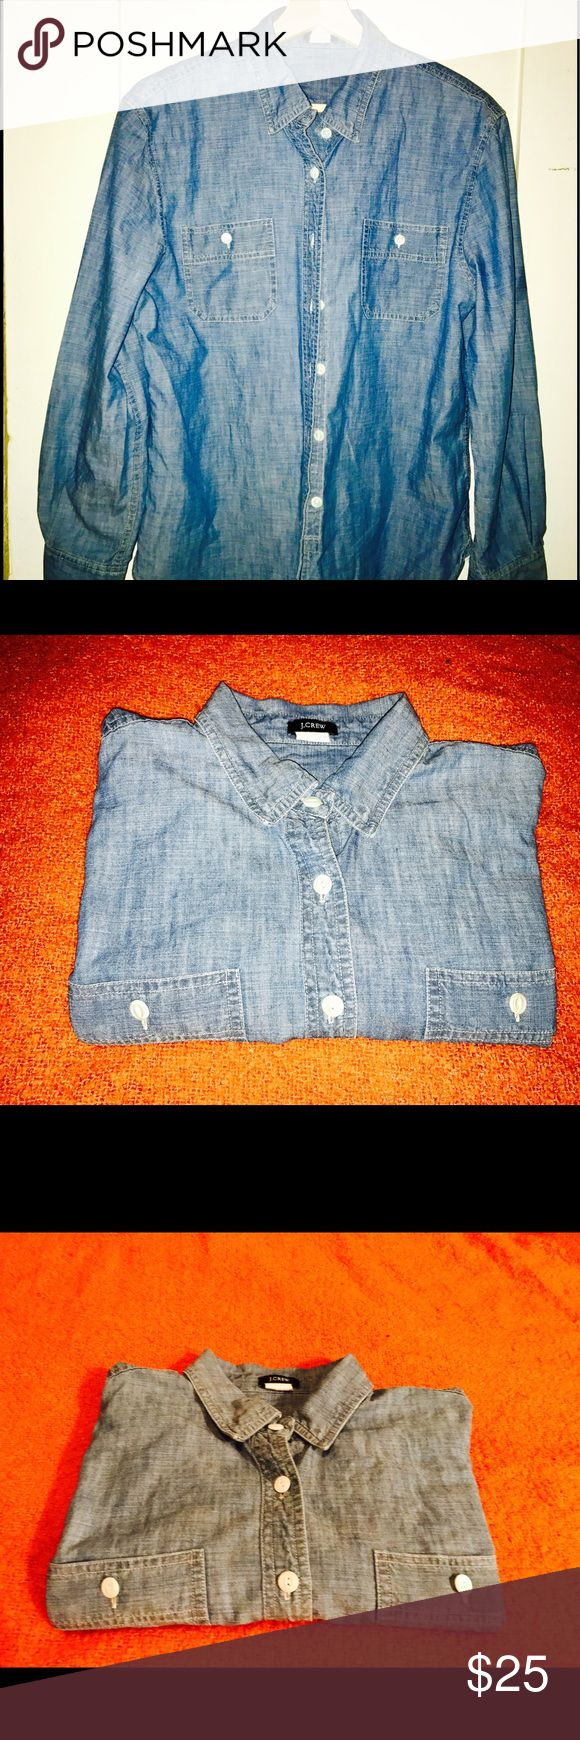 J.Crew Chambray Shirt J.Crew Chambray Shirt, great condition. Your staple Chambray shirt. Lightly used. J.Crew Factory Tops Button Down Shirts